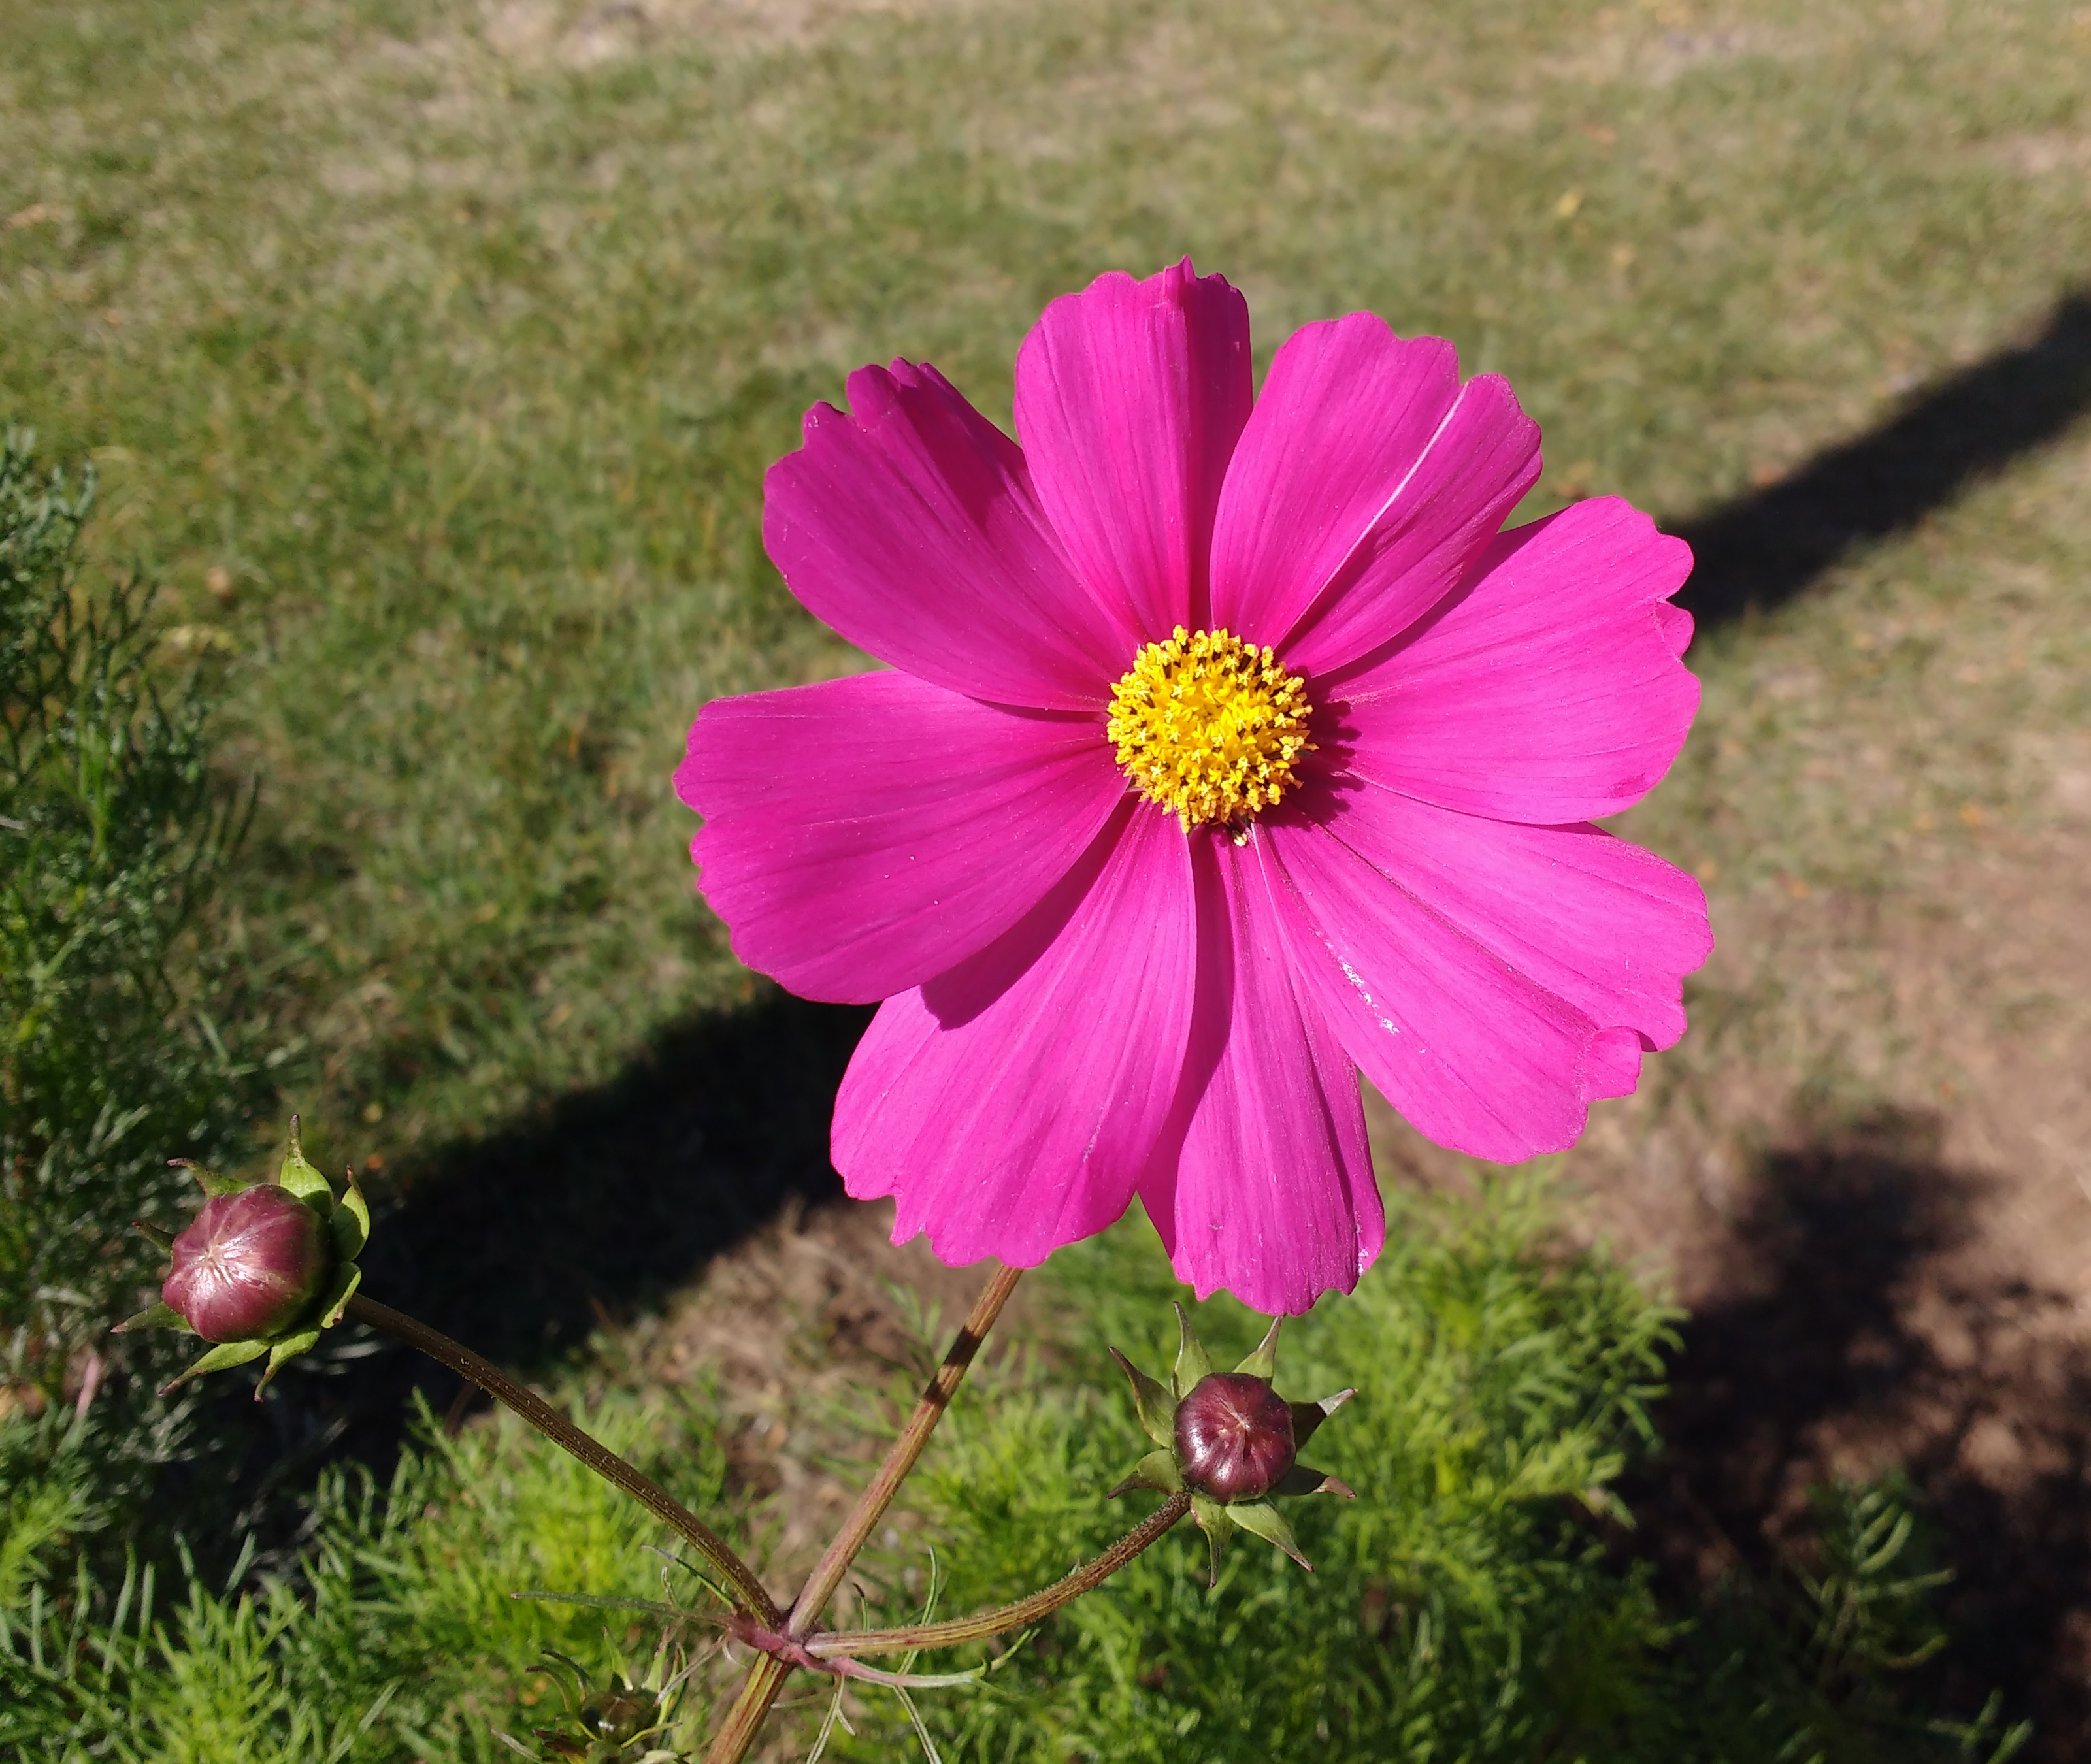 Pink Cosmos Flower Picture Free Photograph Photos Public Domain